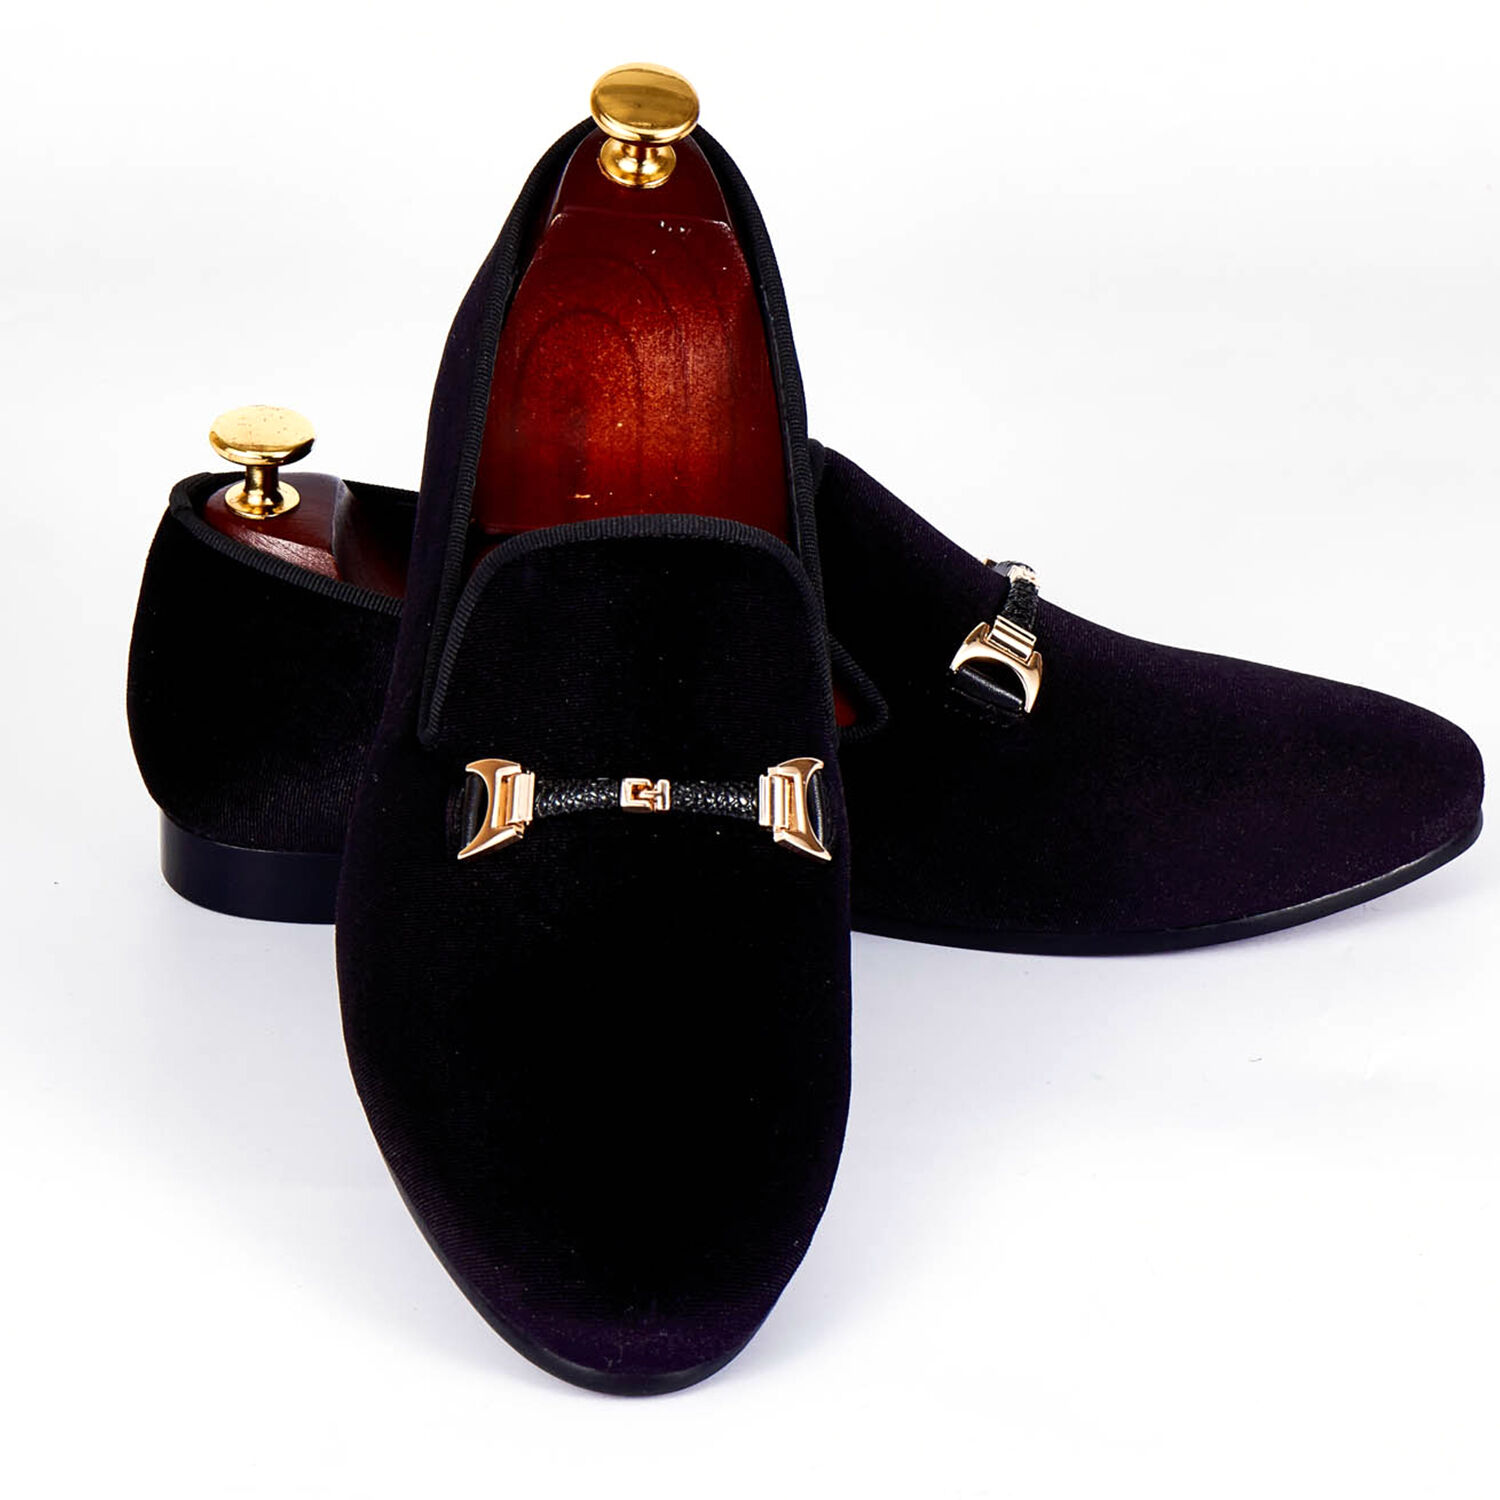 Harpelunde Men Buckle Dress Shoes Black Velvet Loafer Slippers Size 6-14